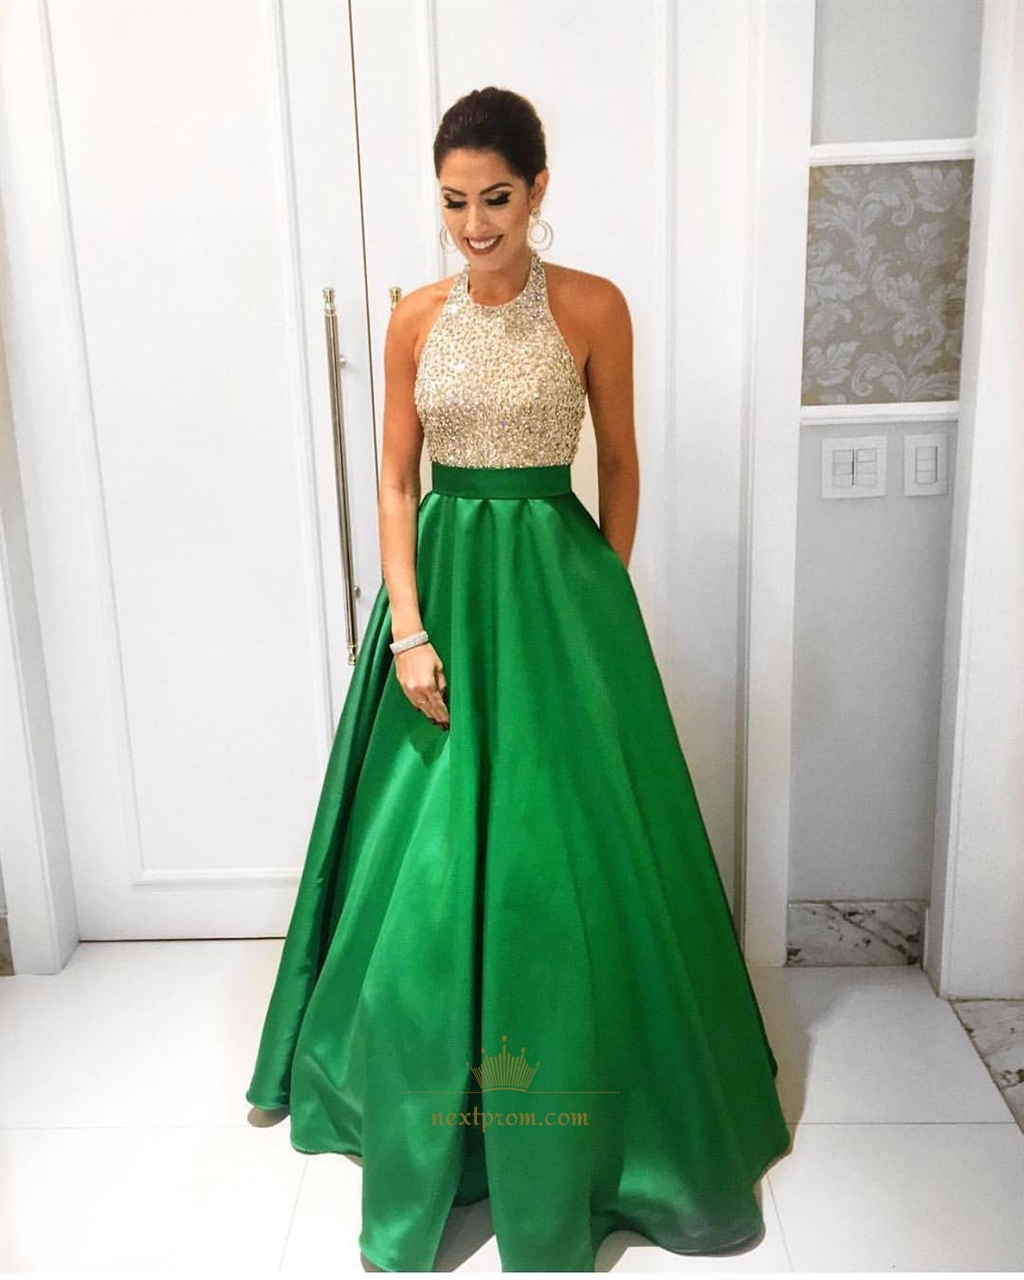 Grass Green Beaded Halter Top Elegant Floor Length A-Line Prom Dress ...